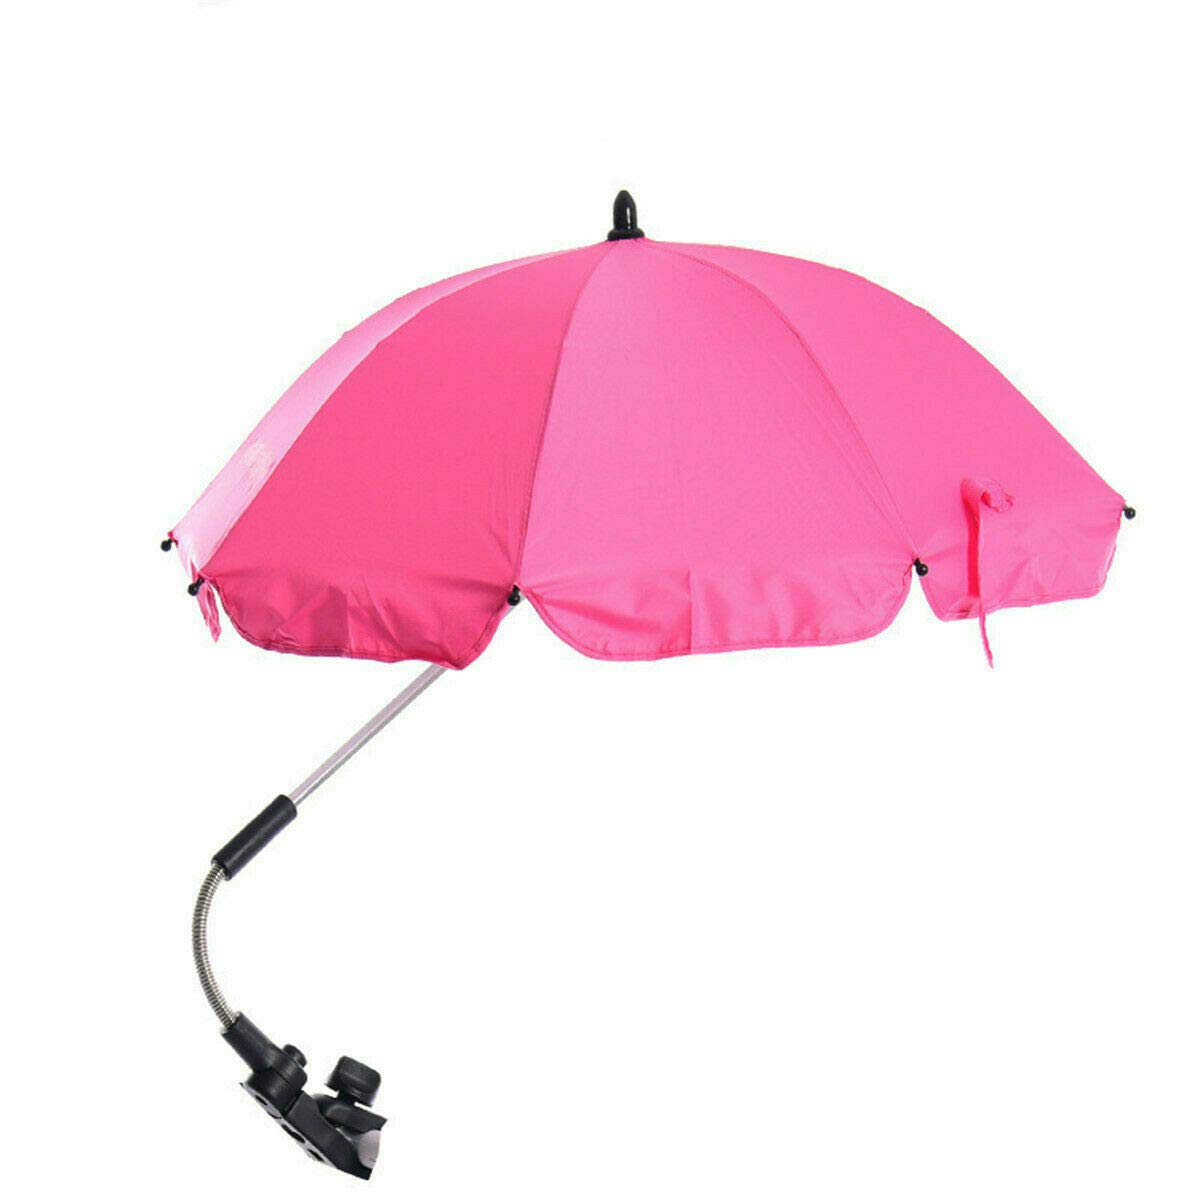 Global Supplies Present Flexible Baby Sun Umbrella Parasol Buggy Pushchair Shade in Rose Red